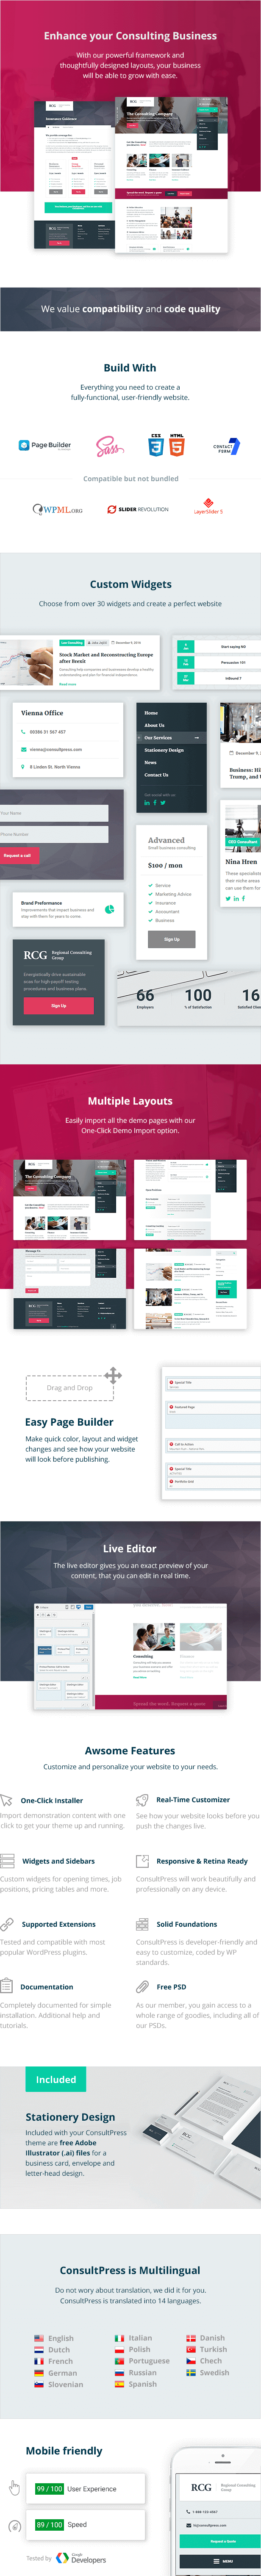 ConsultPress - WordPress Theme for Consulting and Financial Businesses - 1